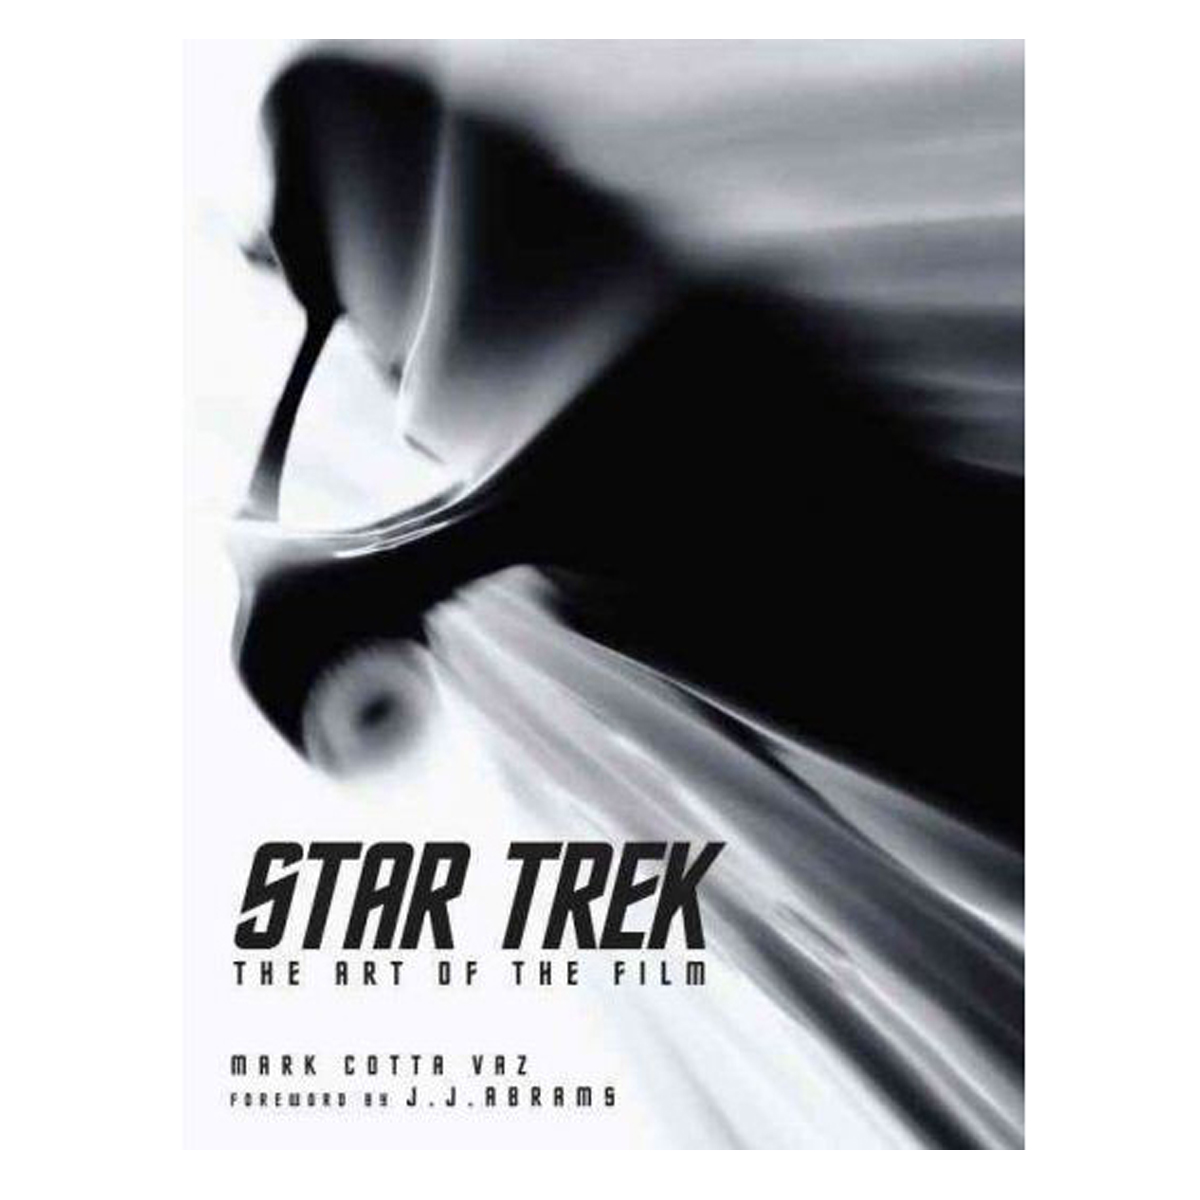 Star Trek: The Art of the Film (Hardcover) Book